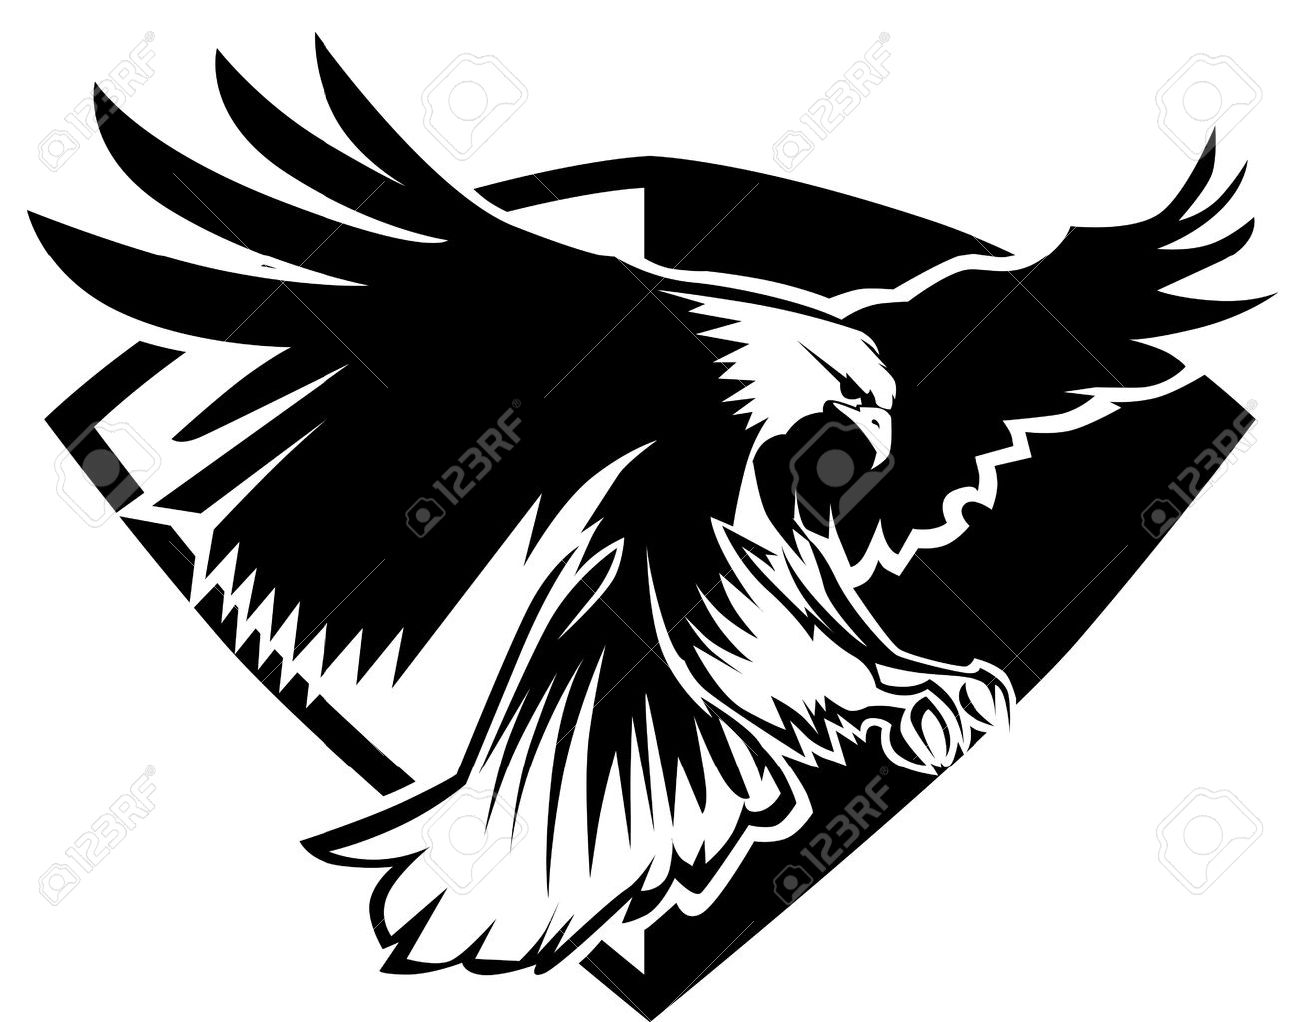 1300x1022 Eagle Mascot Flying Wings Badge Design Royalty Free Cliparts